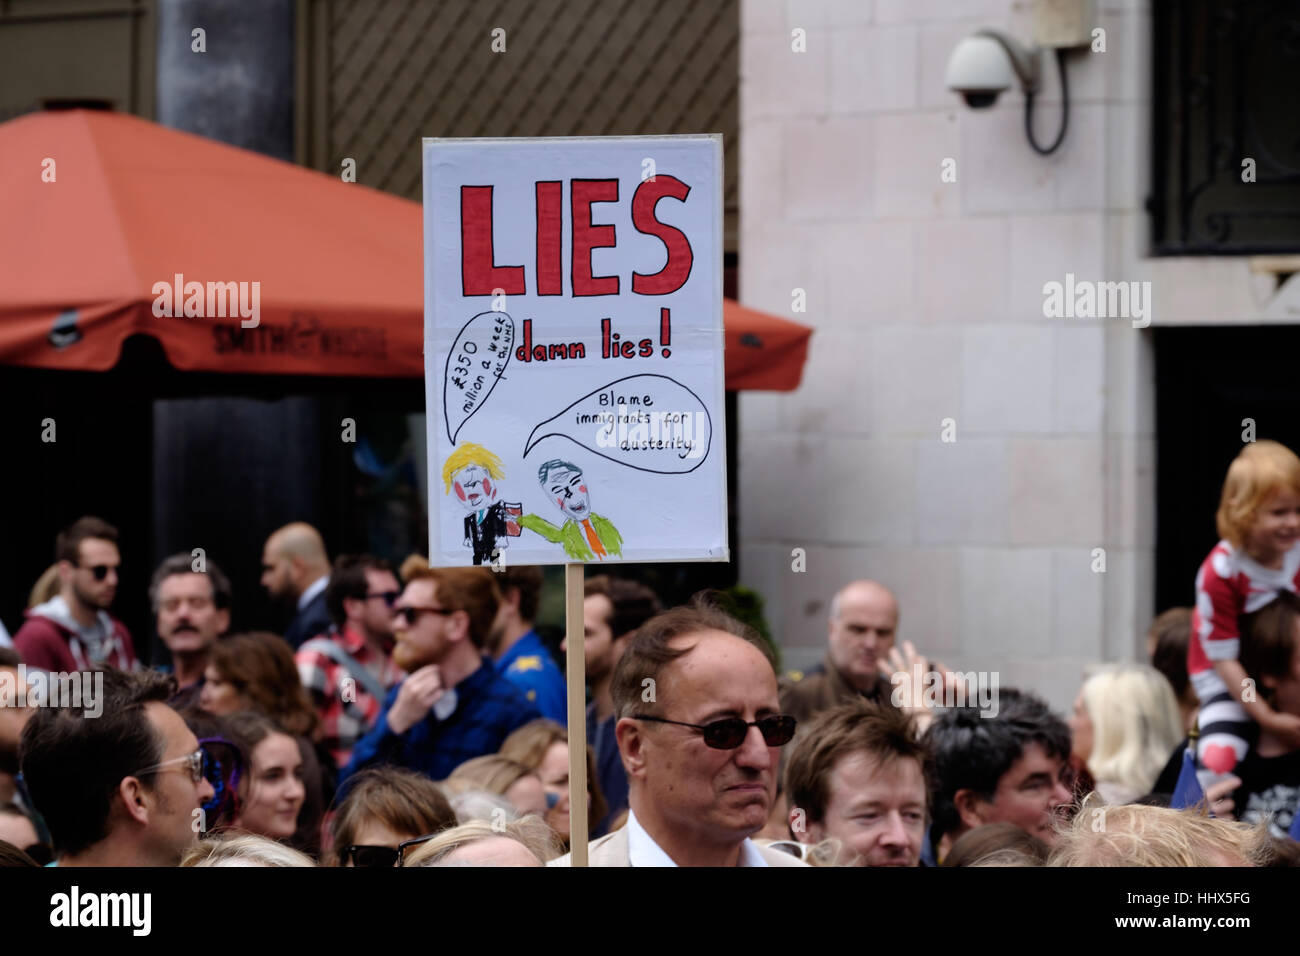 Man carries 'Lies damn lies' protest sign at March for Europe - Stock Image